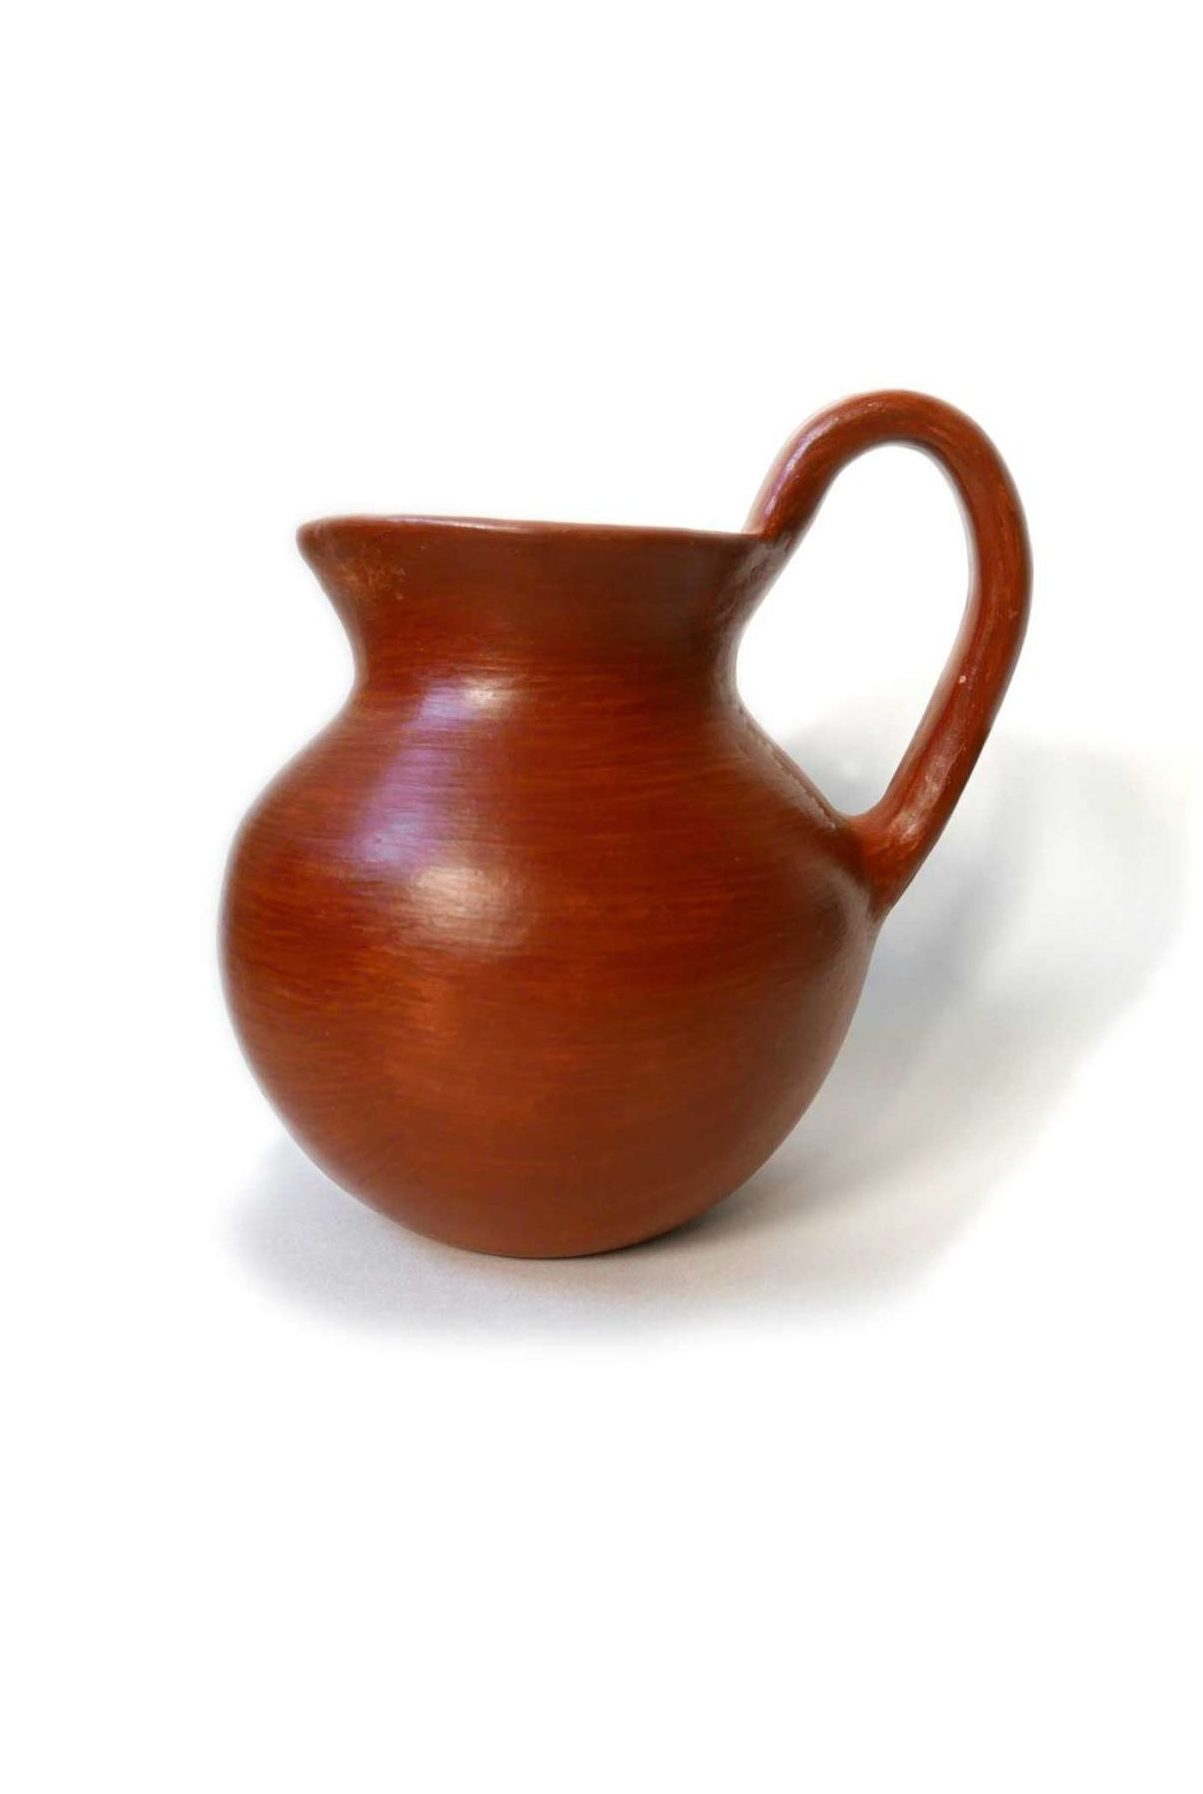 Mexican Barro Rojo Red Clay Ceramic Jug - www.nidocollective.com #barrorojo #mexicanceramics #redclaypottery #terracottajug